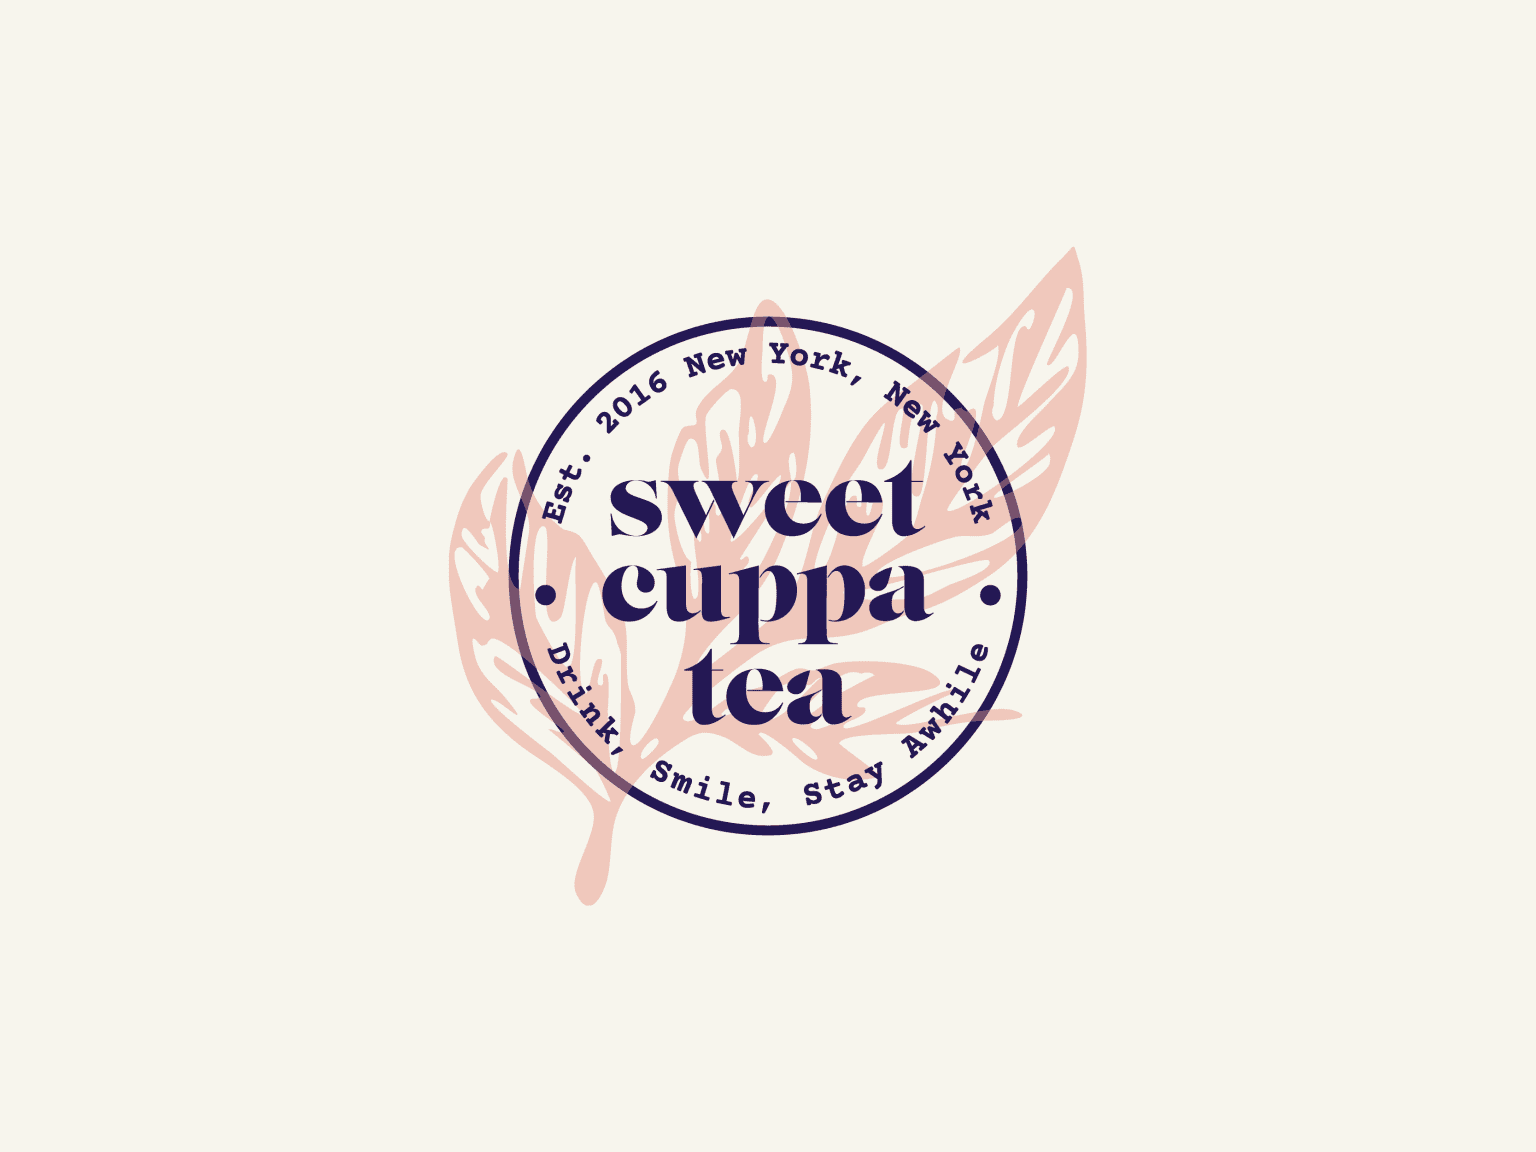 Brand Identity and Art Direction for Sweet Cuppa Tea Co.